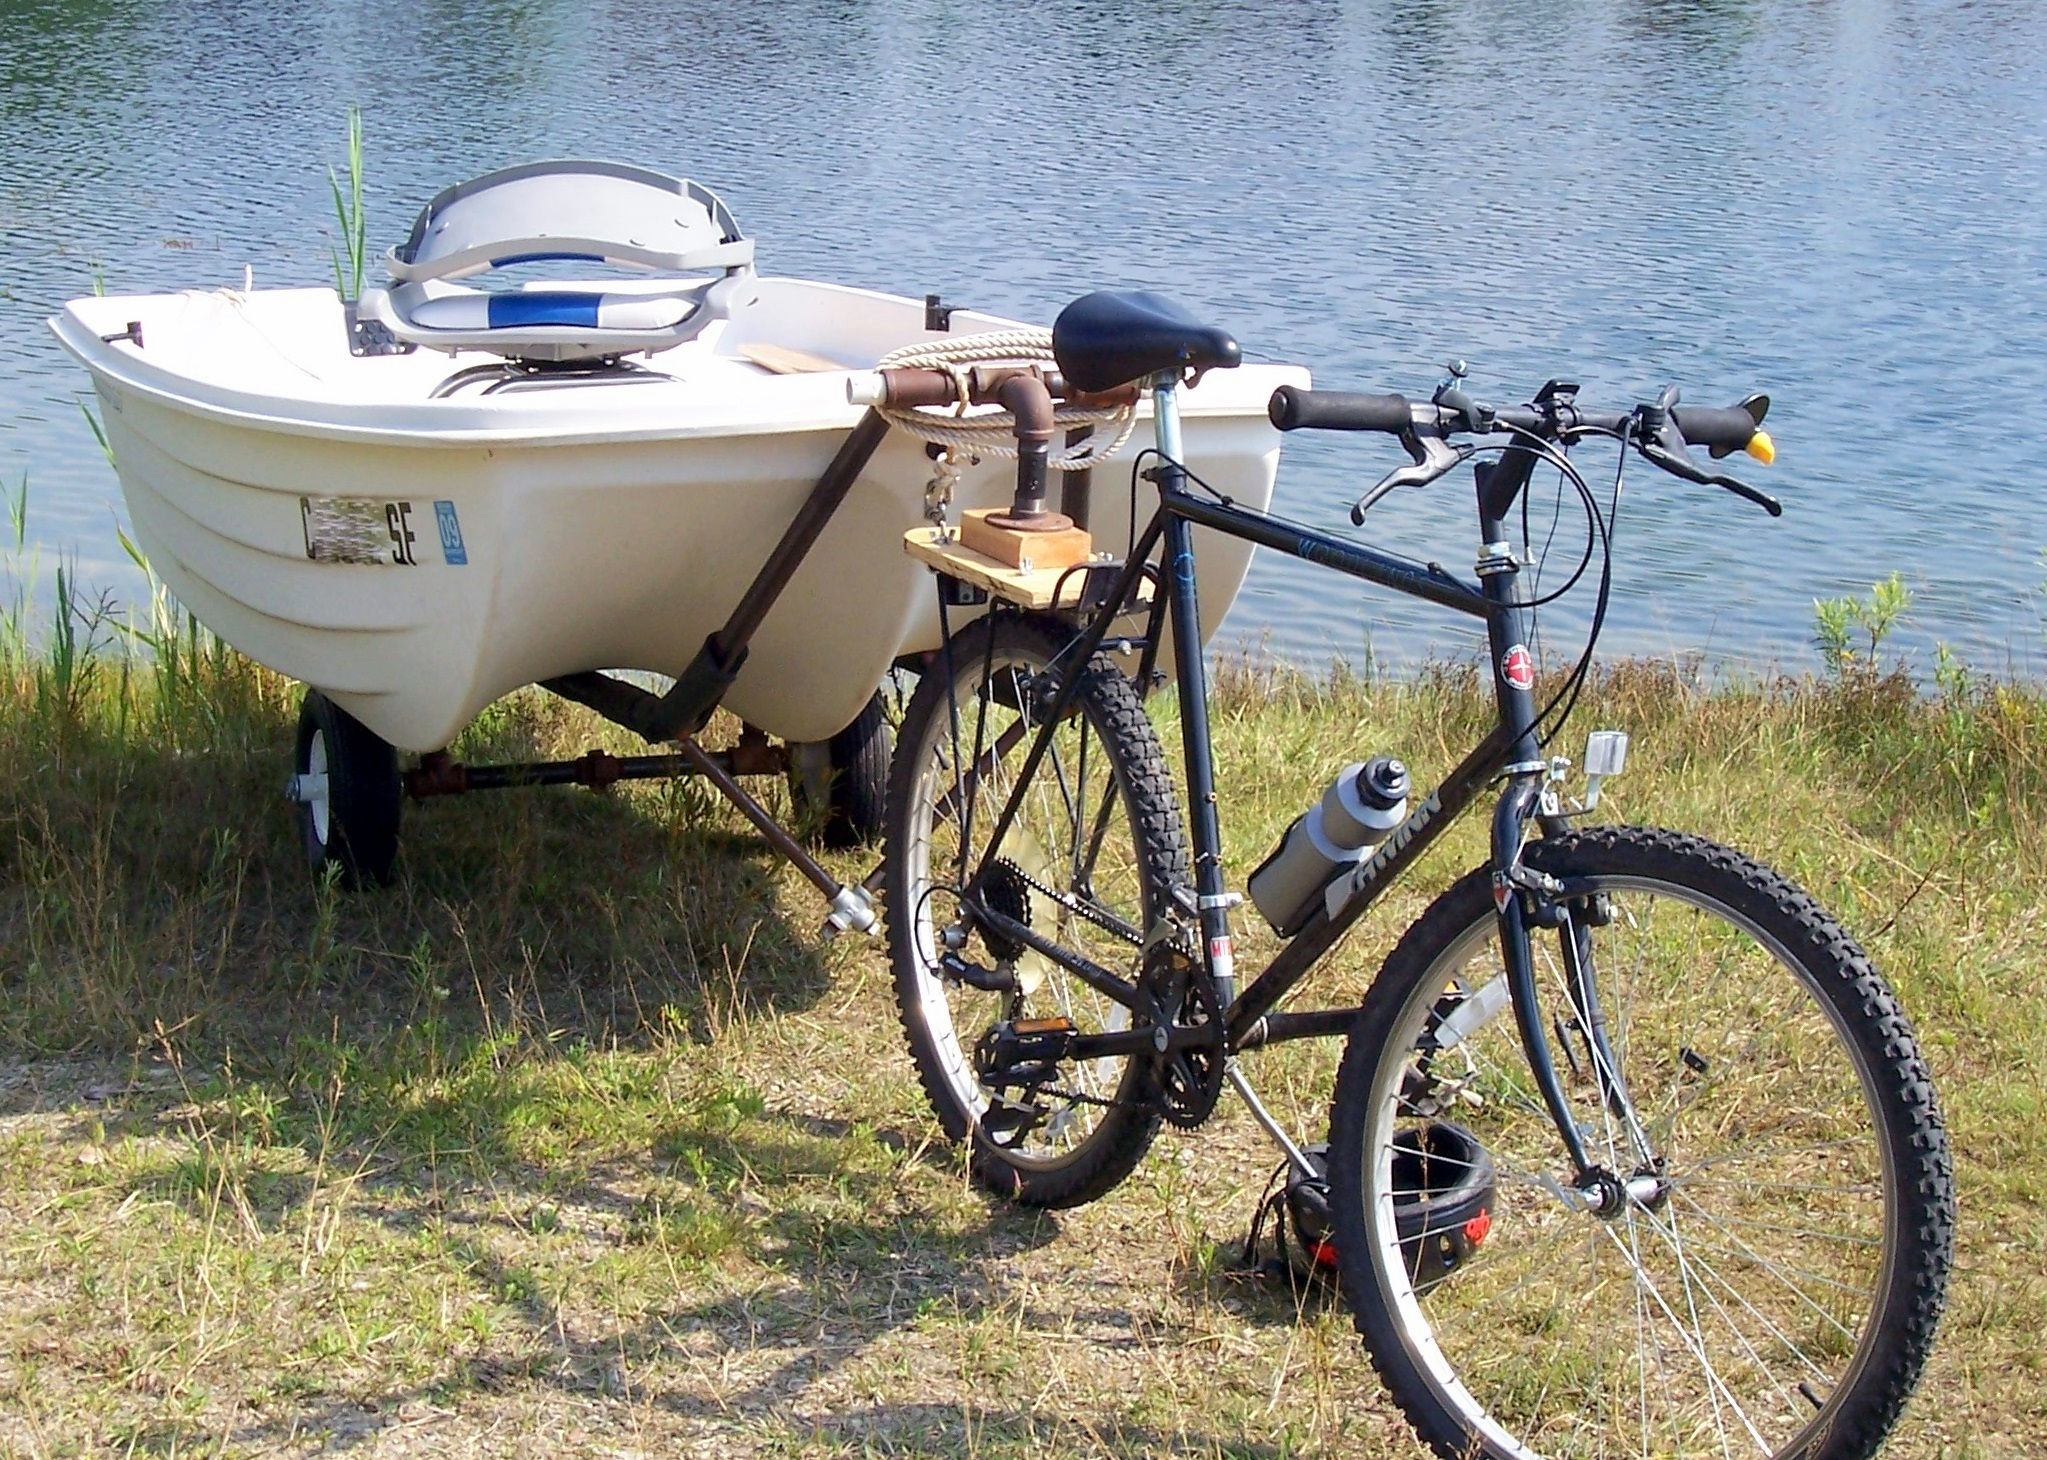 Tow a Boat with a Bike